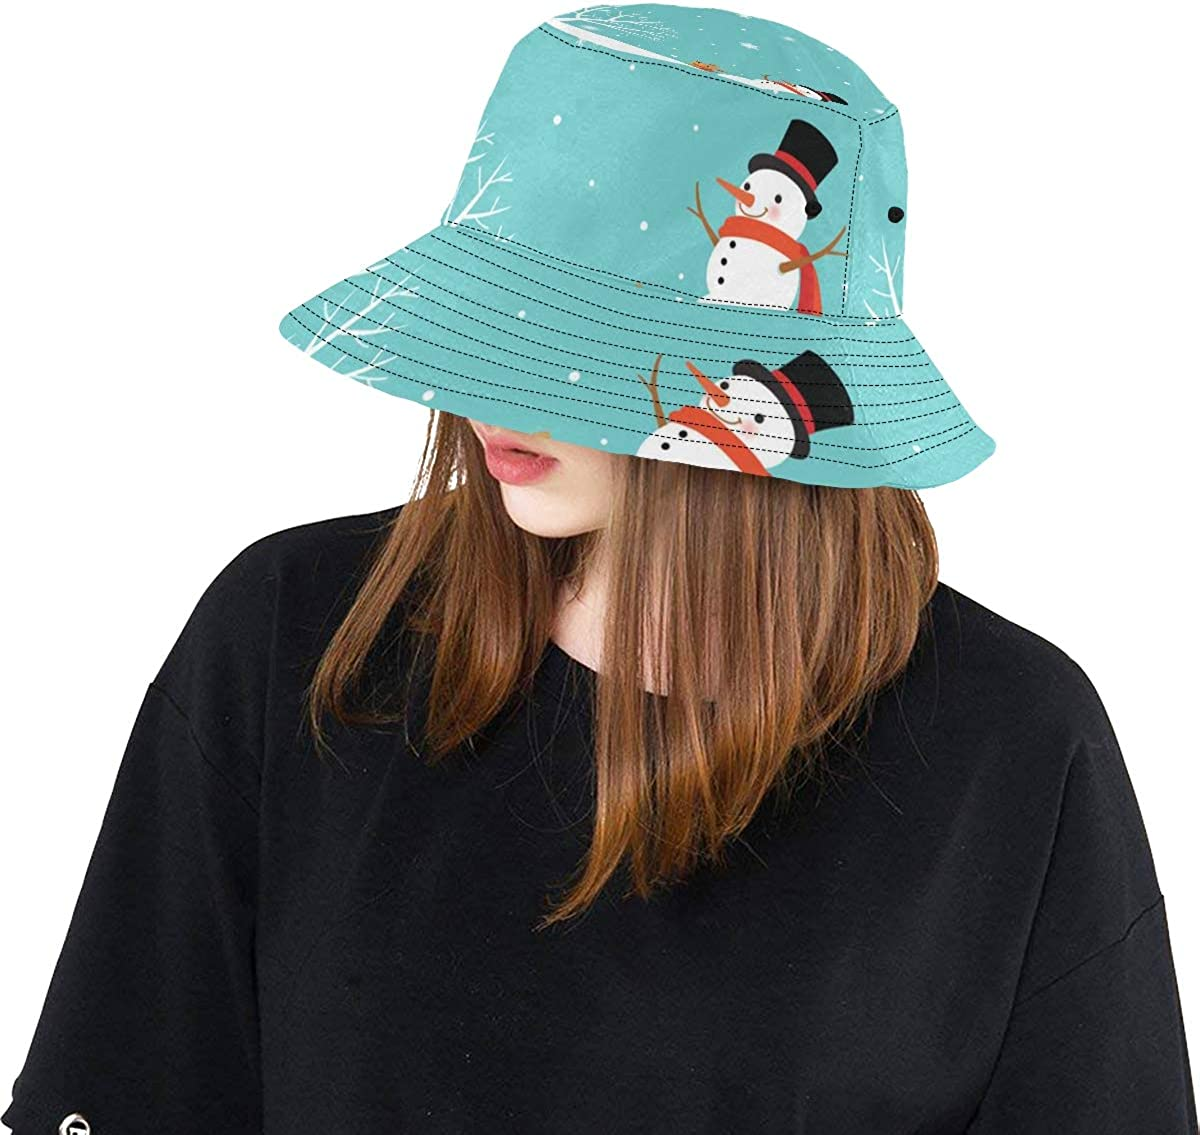 Cute Big Polar Bear Hand Drawn New Summer Unisex Cotton Fashion Fishing Sun Bucket Hats for Kid Teens Women and Men with Customize Top Packable Fisherman Cap for Outdoor Travel